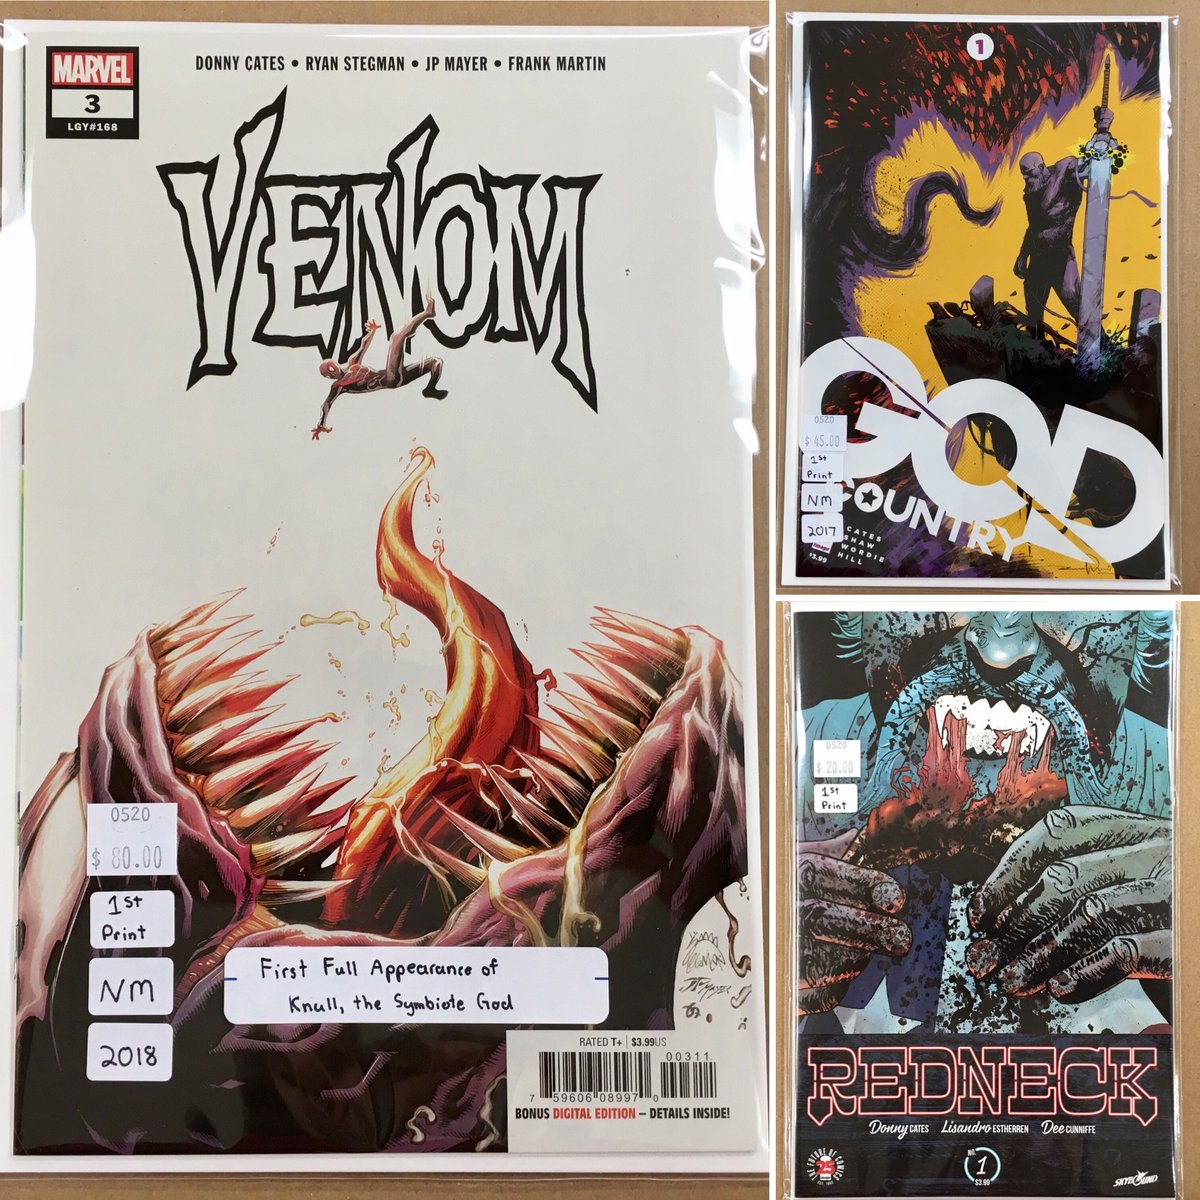 Added some #DonnyCates Keys to the case.  #Venom 3, the #FirstAppearance of Knull the Symbiote God.  And the #FirstIssue of #GodCountry & #Redneck.  All #FirstPrintings. ... #BackIssues #ModernAge #Marvel #ImageComics #Comics #FirstPrint #KeyIssue #LasVegas #getyourfixpic.twitter.com/9LorjbMYcx